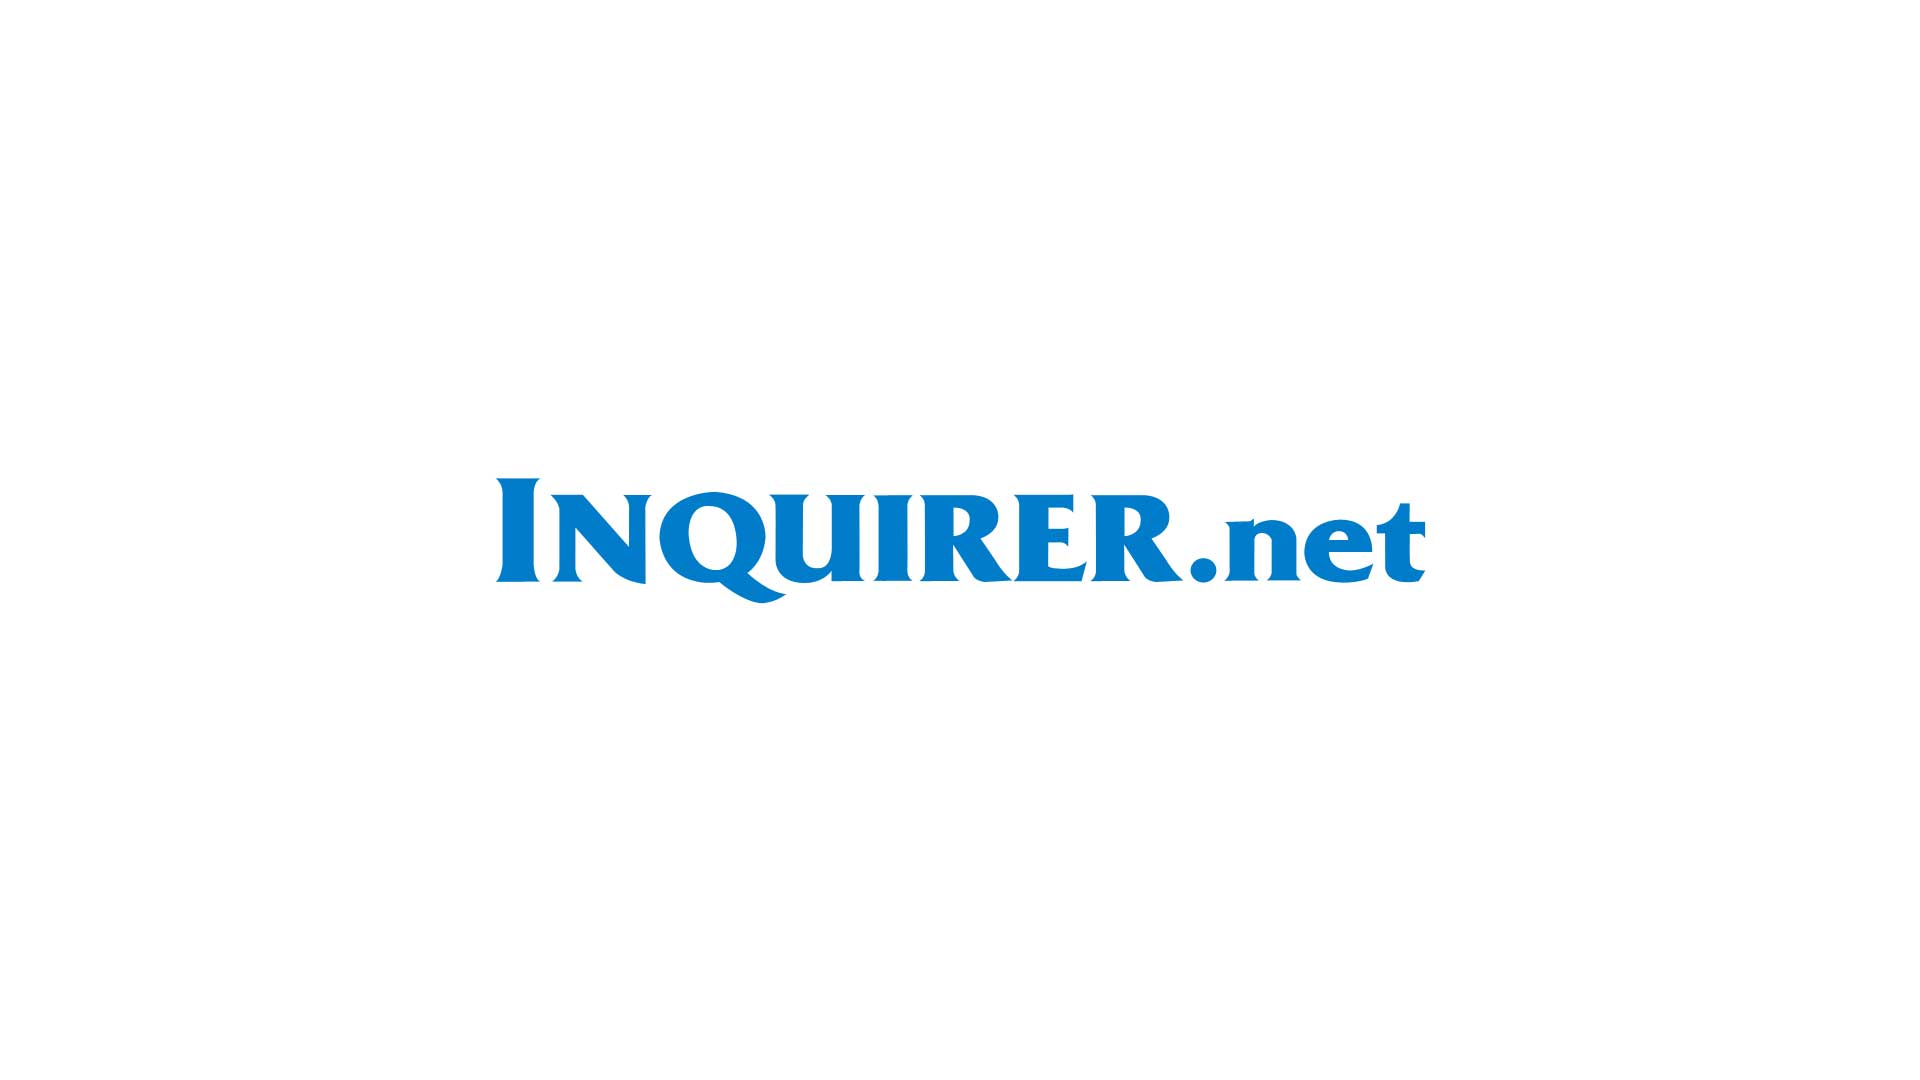 Meralco admits 'overestimation, underestimation' of power use in March, April billings - INQUIRER.net